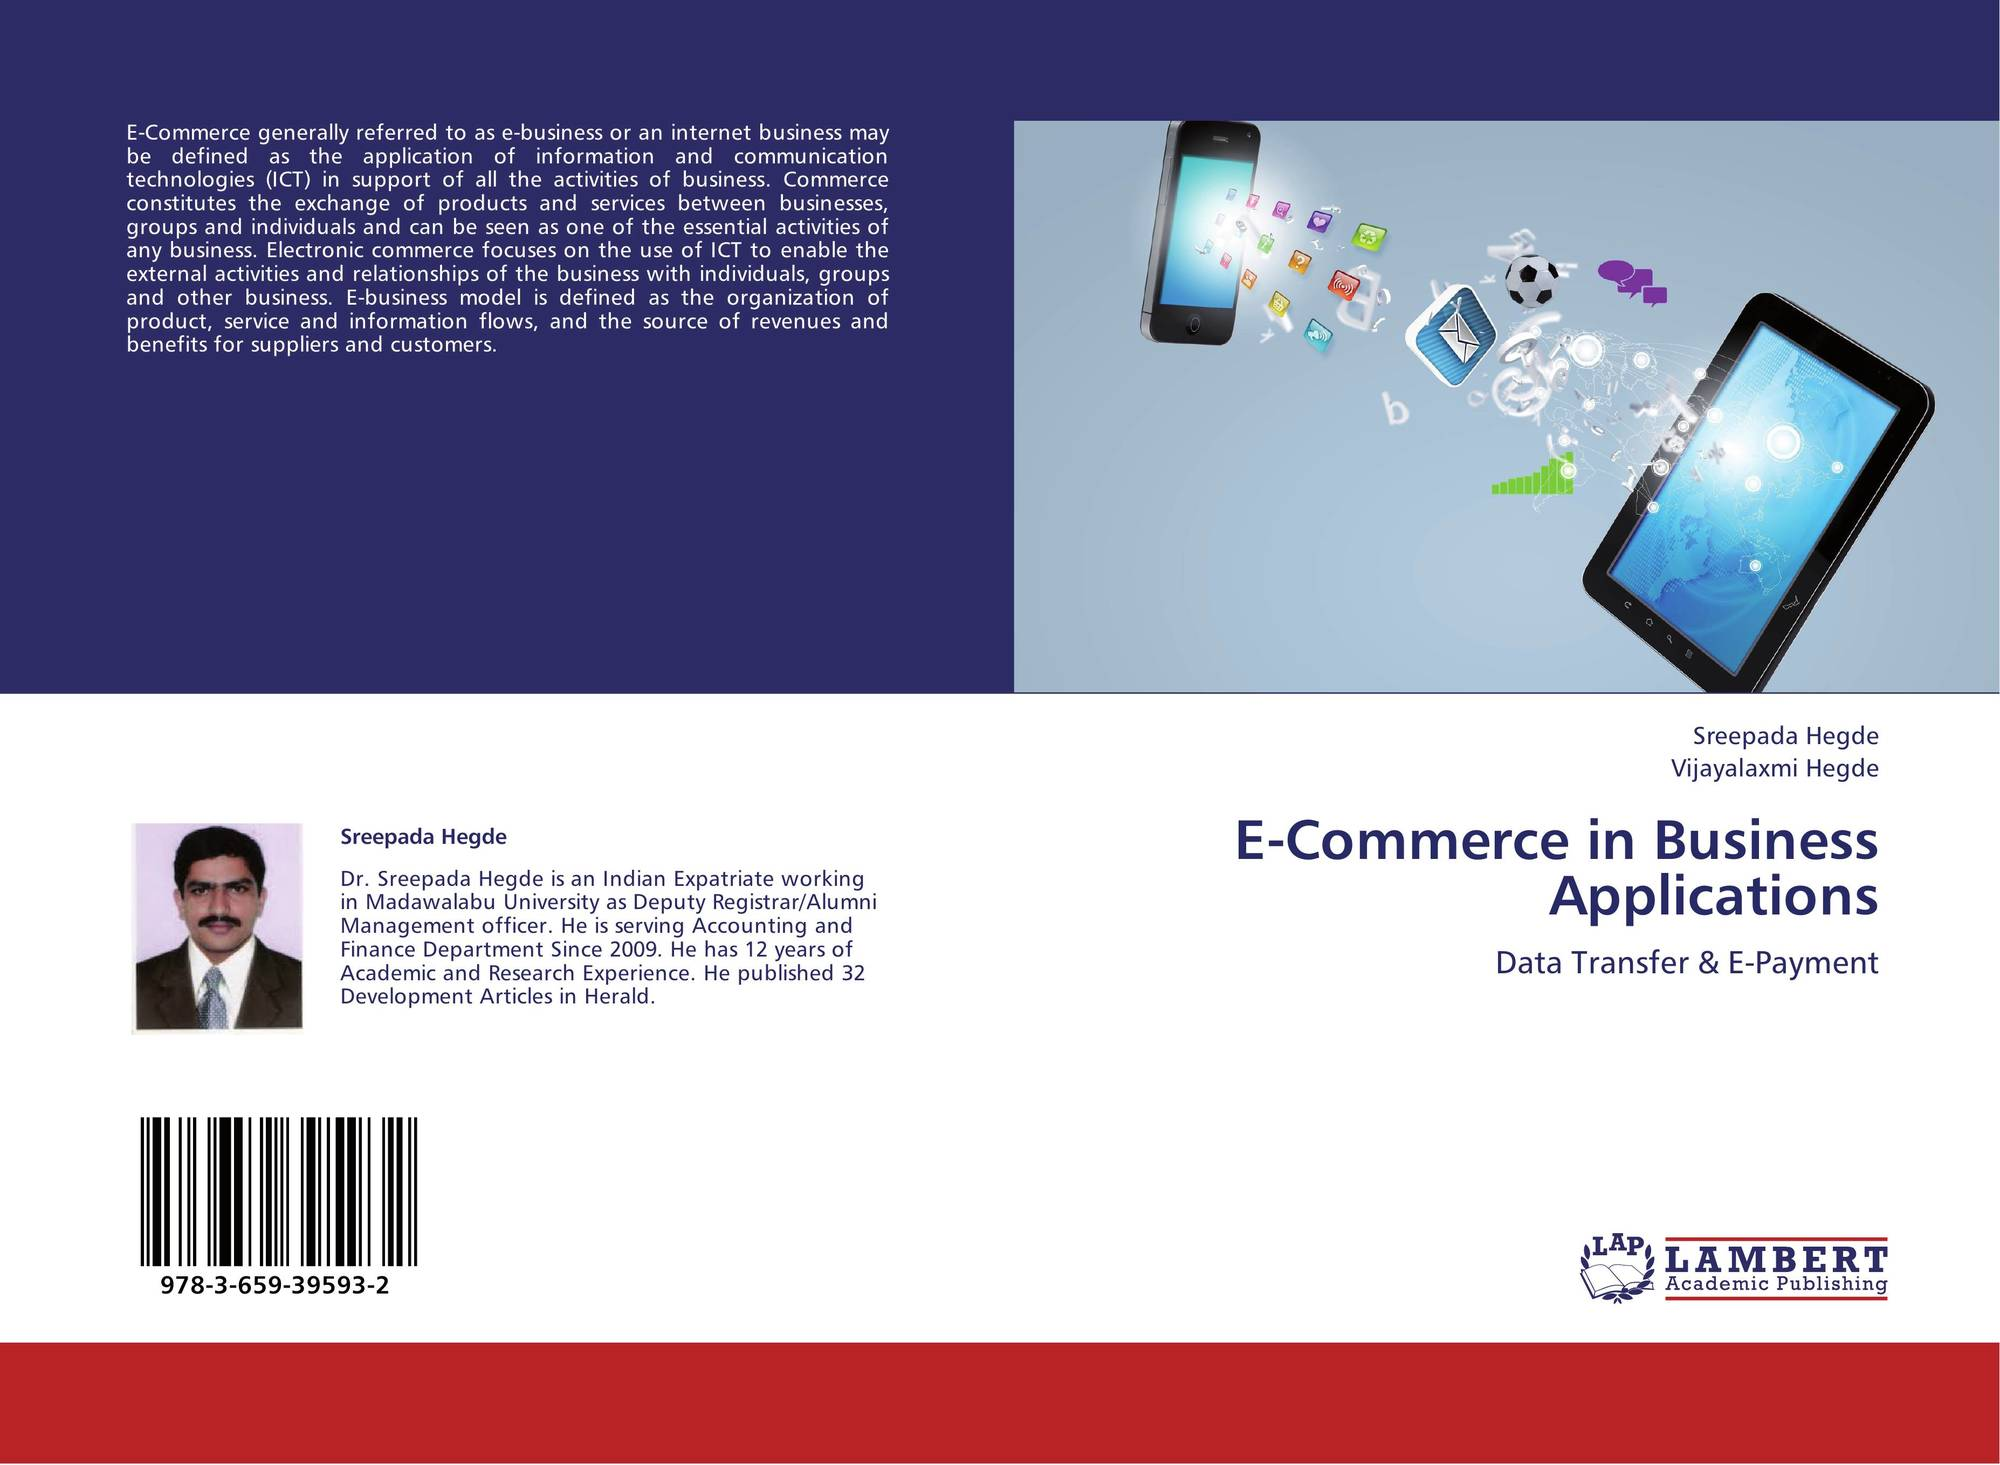 E-Commerce In Business Applications, 978-3-659-39593-2, 3659395935 ,9783659395932 By Sreepada